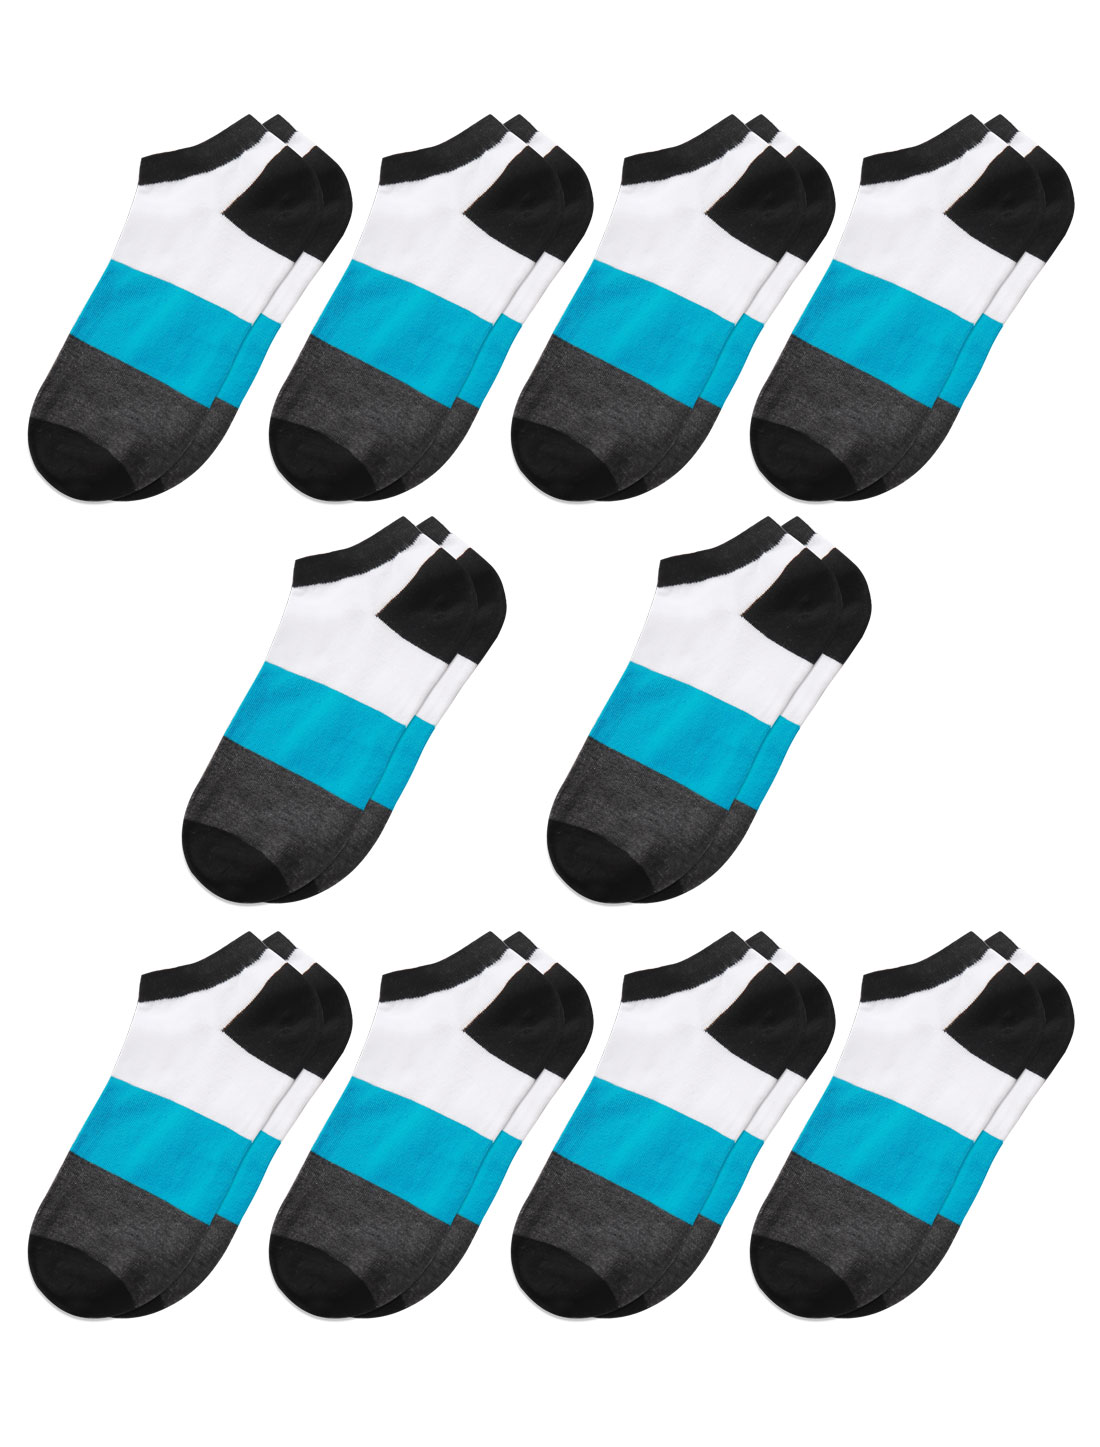 Men Low Cut Ankle Length Color Block Short Socks 10 Pairs Gray M